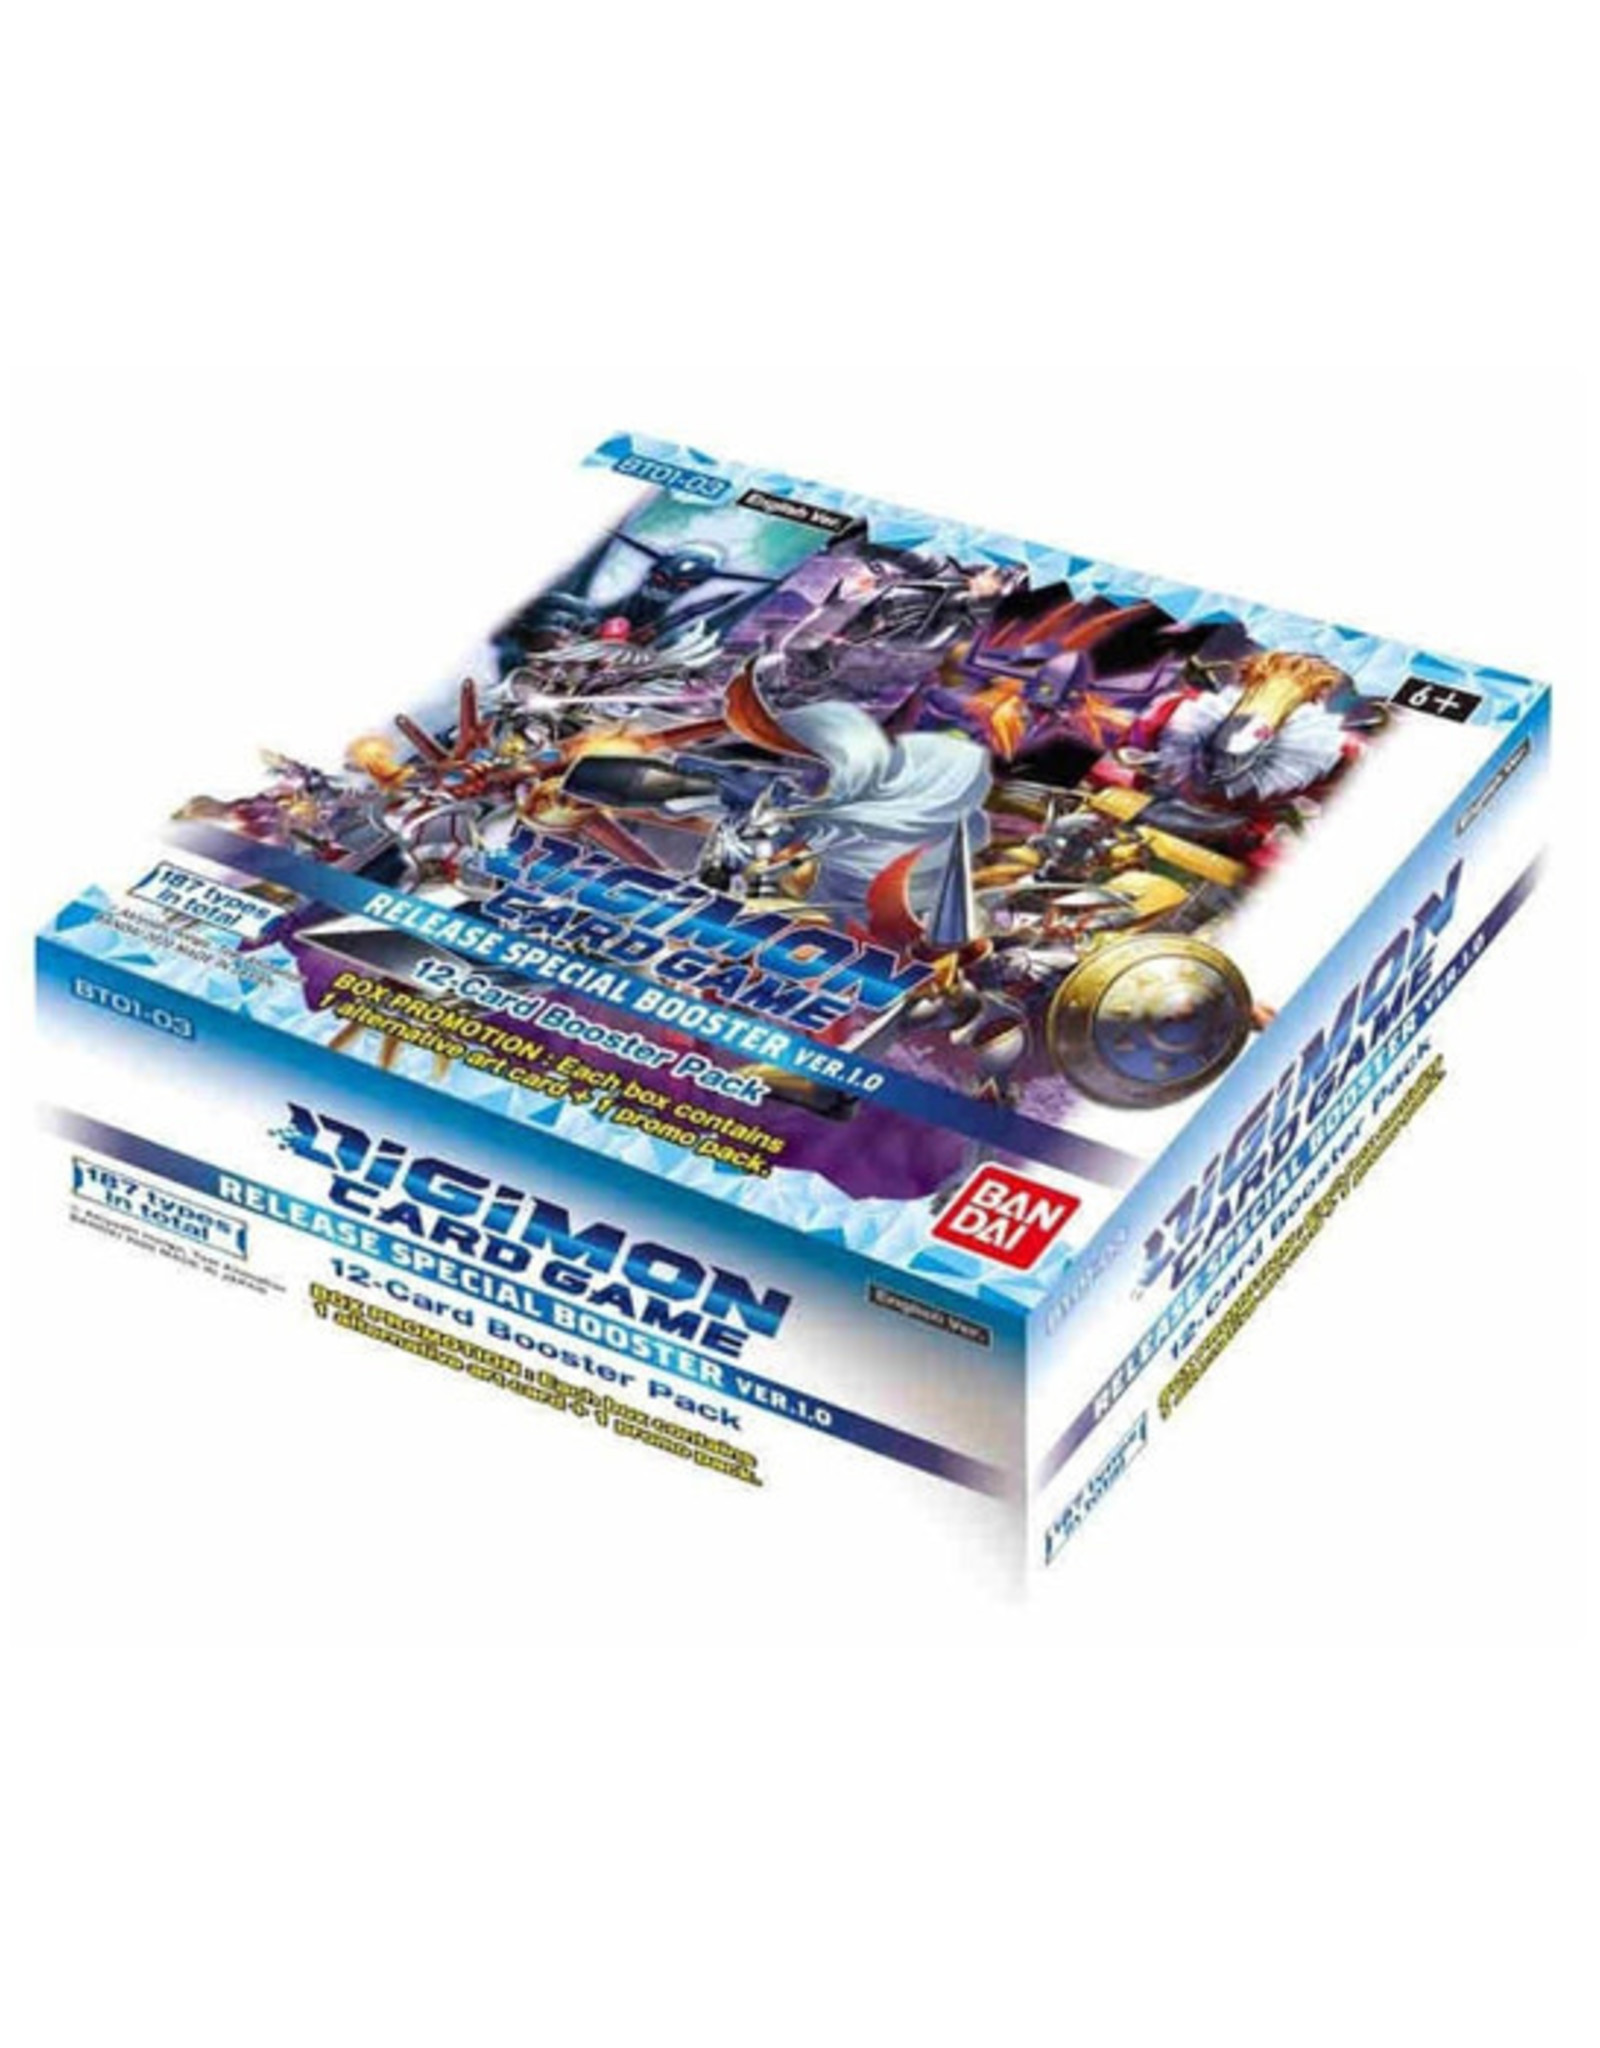 Bandai Digimon TCG: Release Special Ver. 1.0 - Booster Box